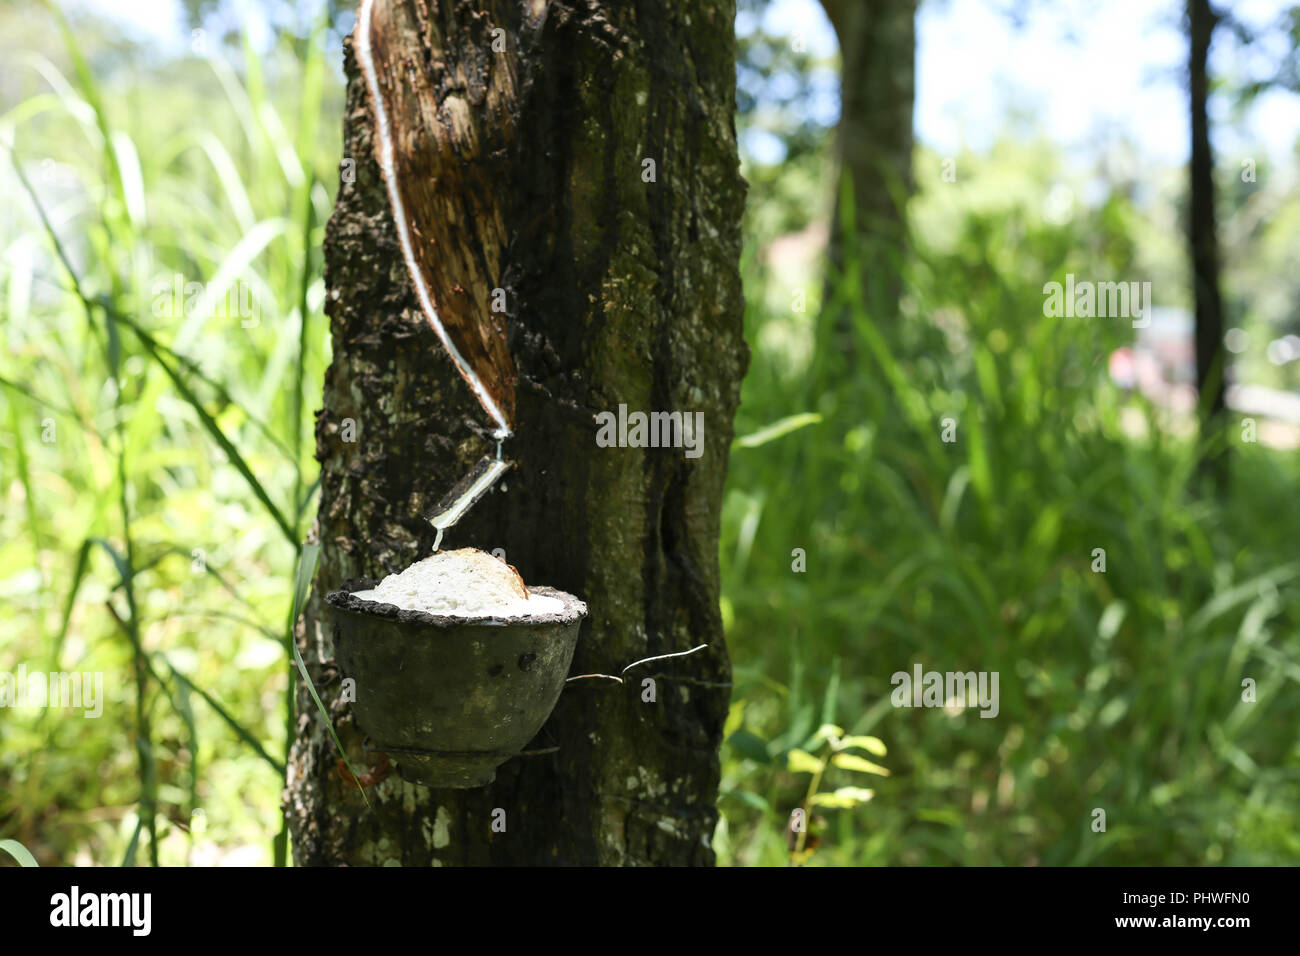 Rubber tree milk flowing into a bowl - Stock Image